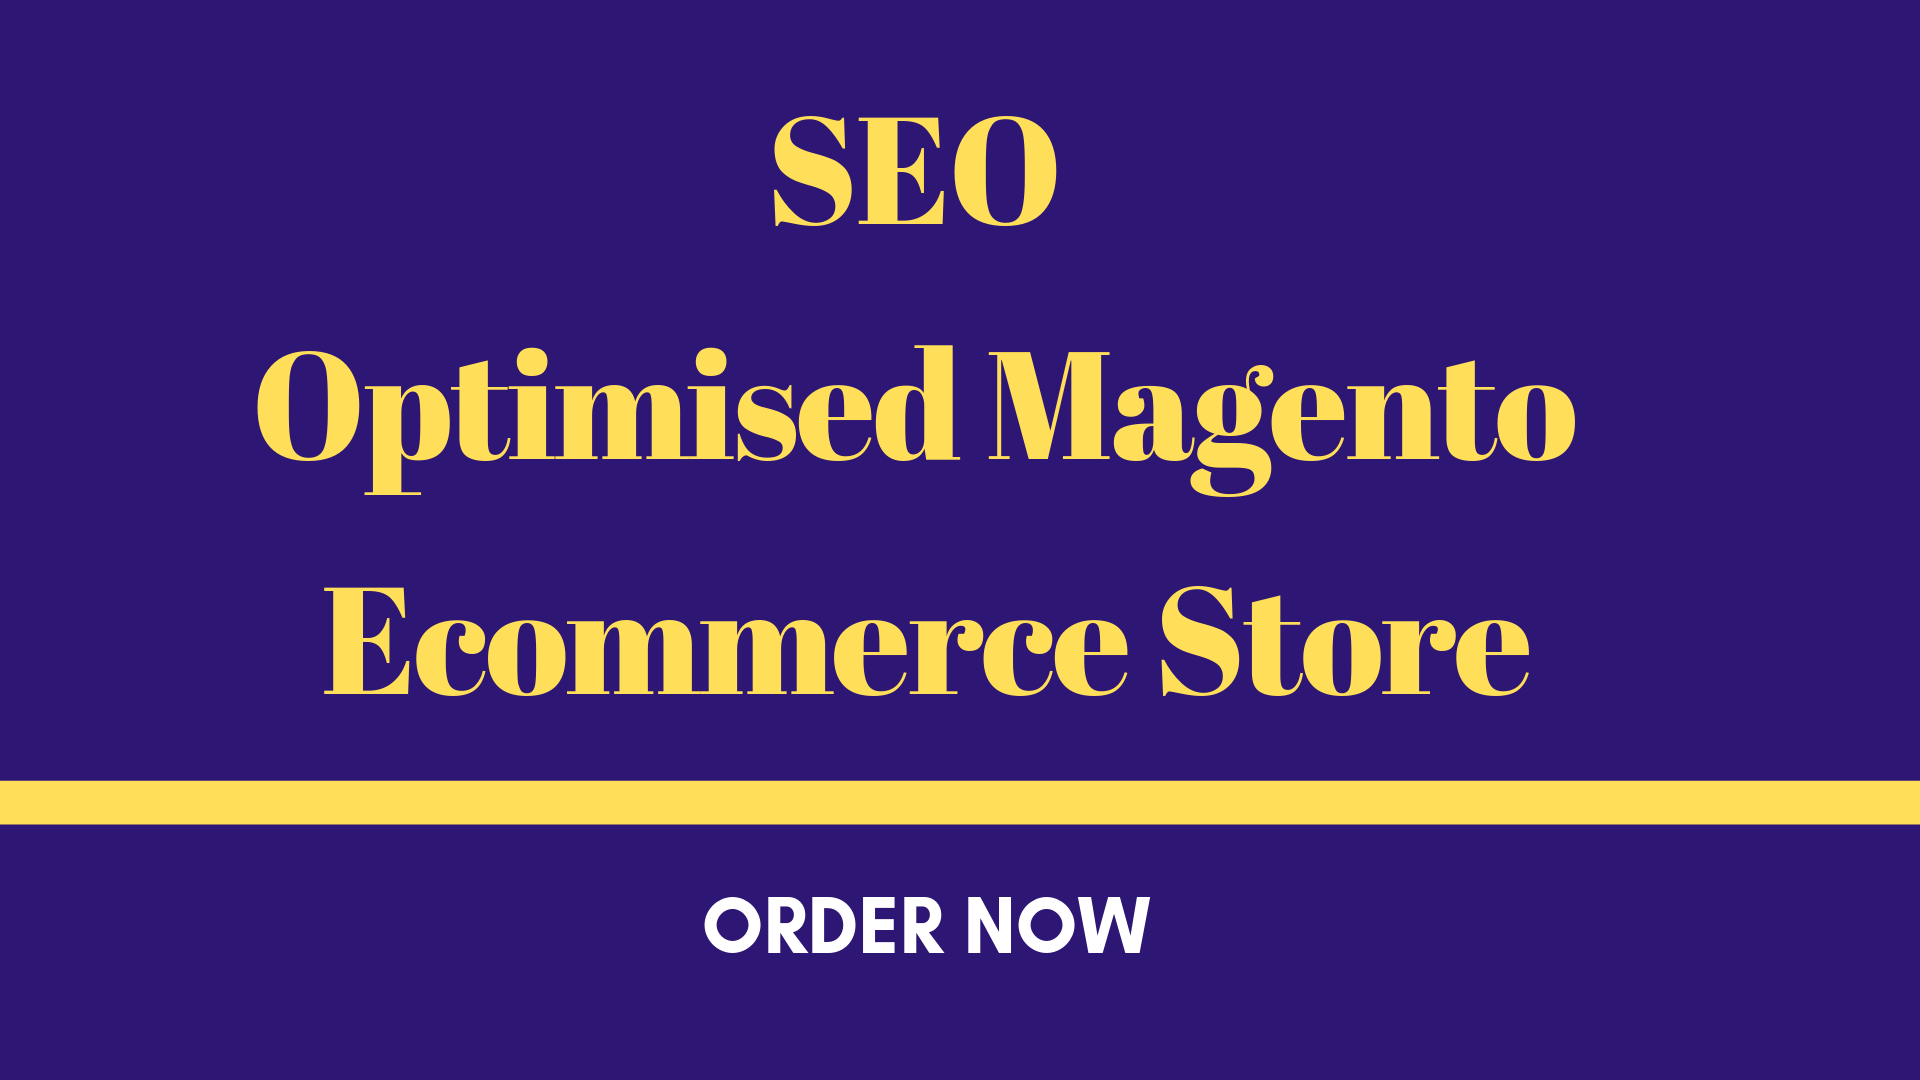 Build an SEO optimised magento ecommerce store